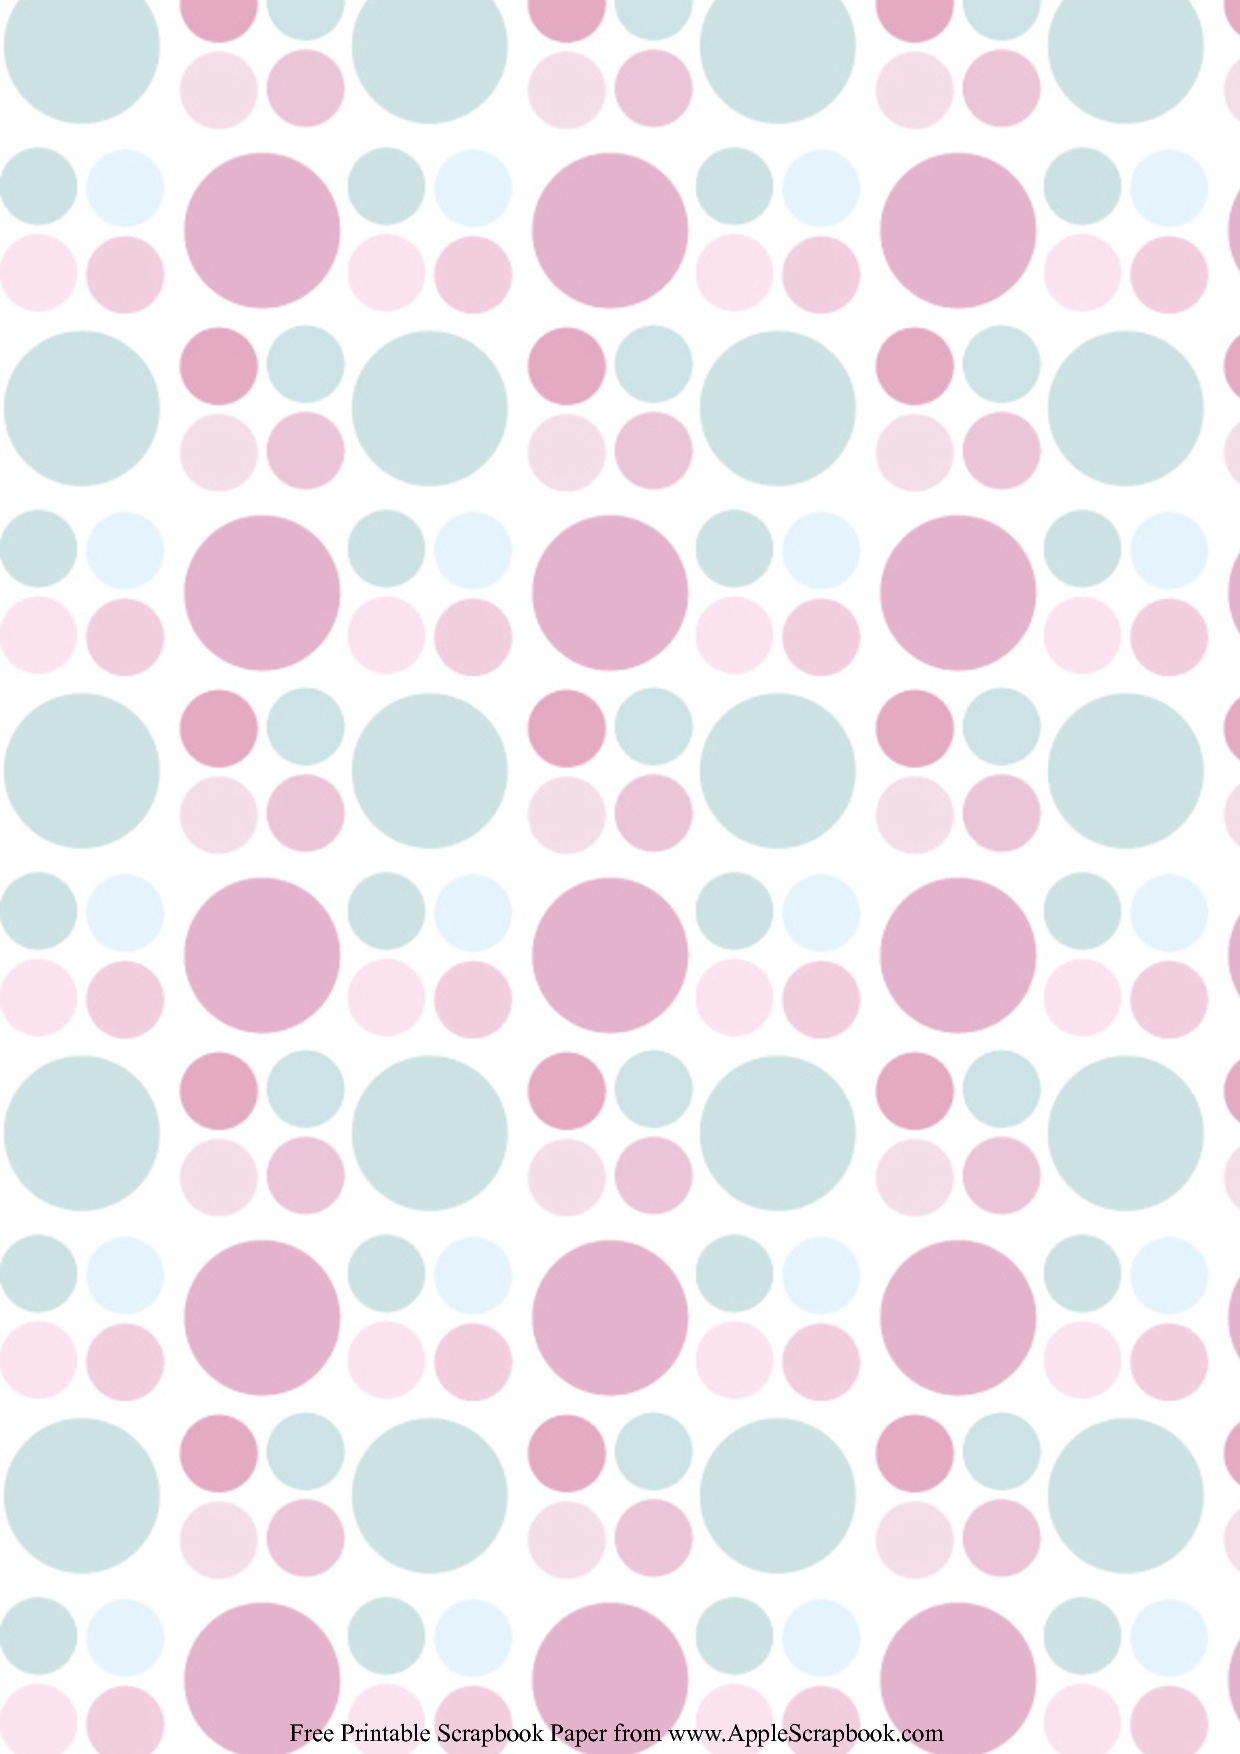 4 Images of Free Printable Scrapbook Paper Designs